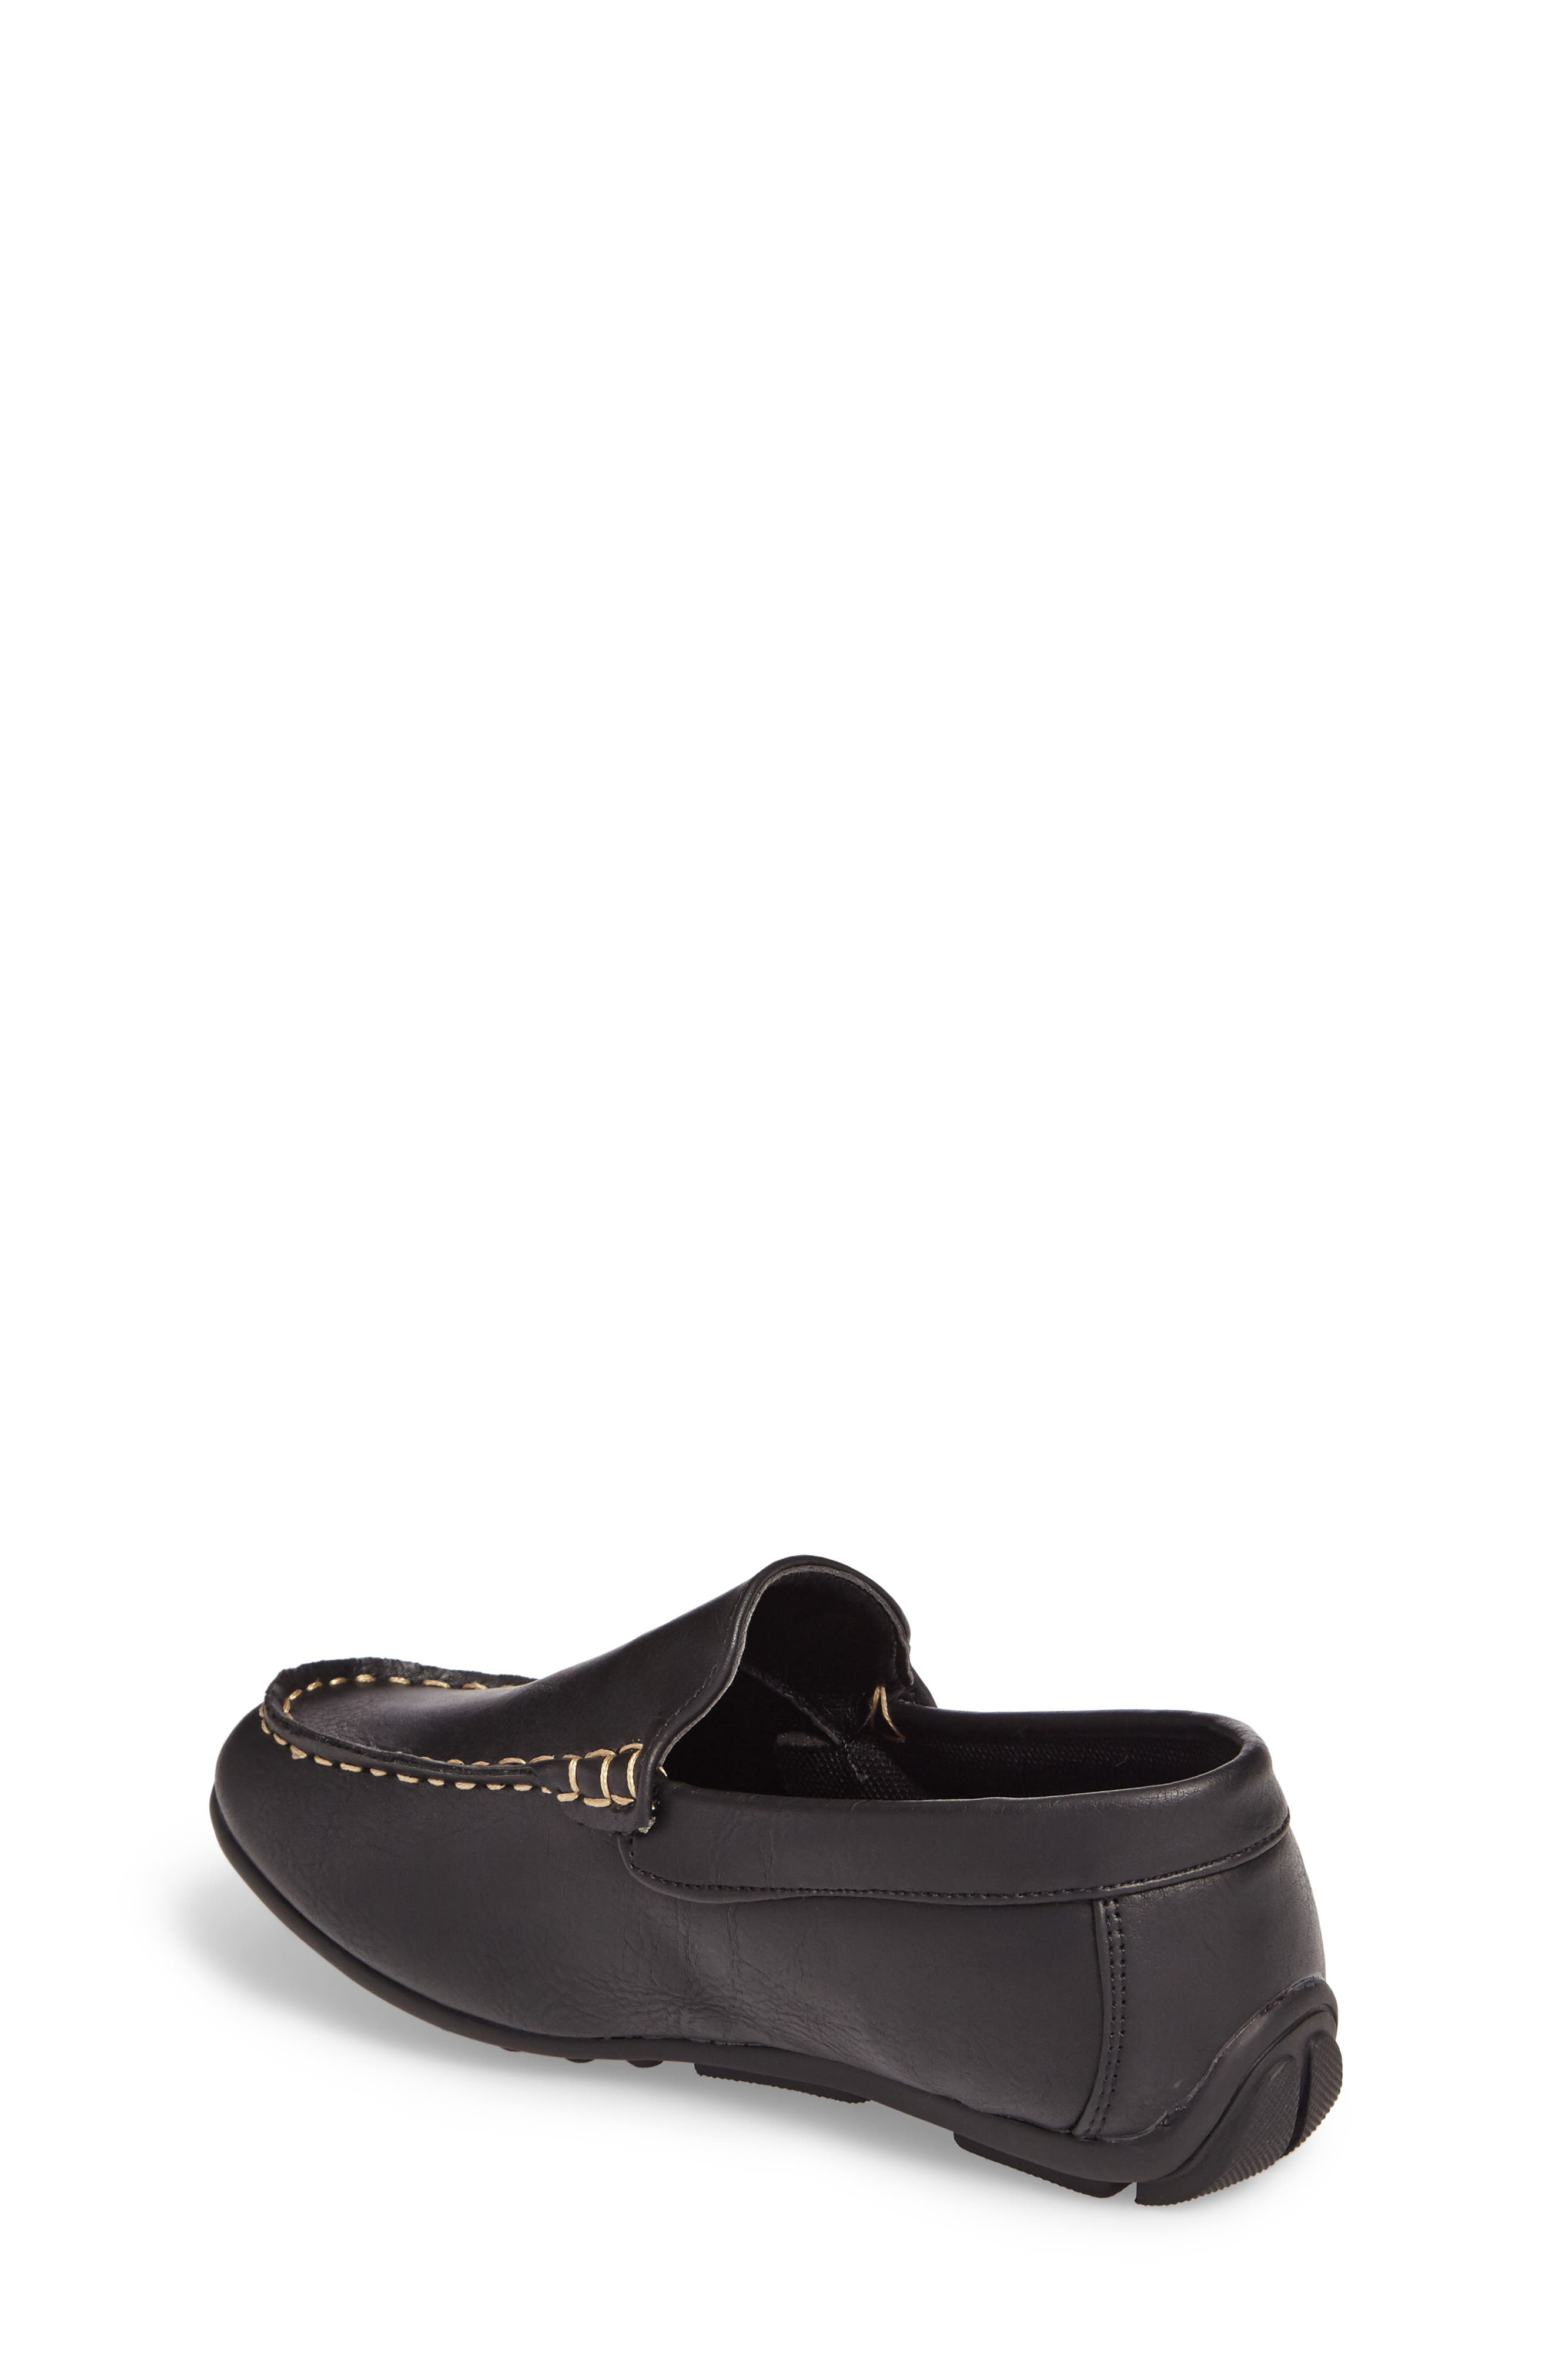 Compton Driving Loafer,                             Alternate thumbnail 2, color,                             BLACK